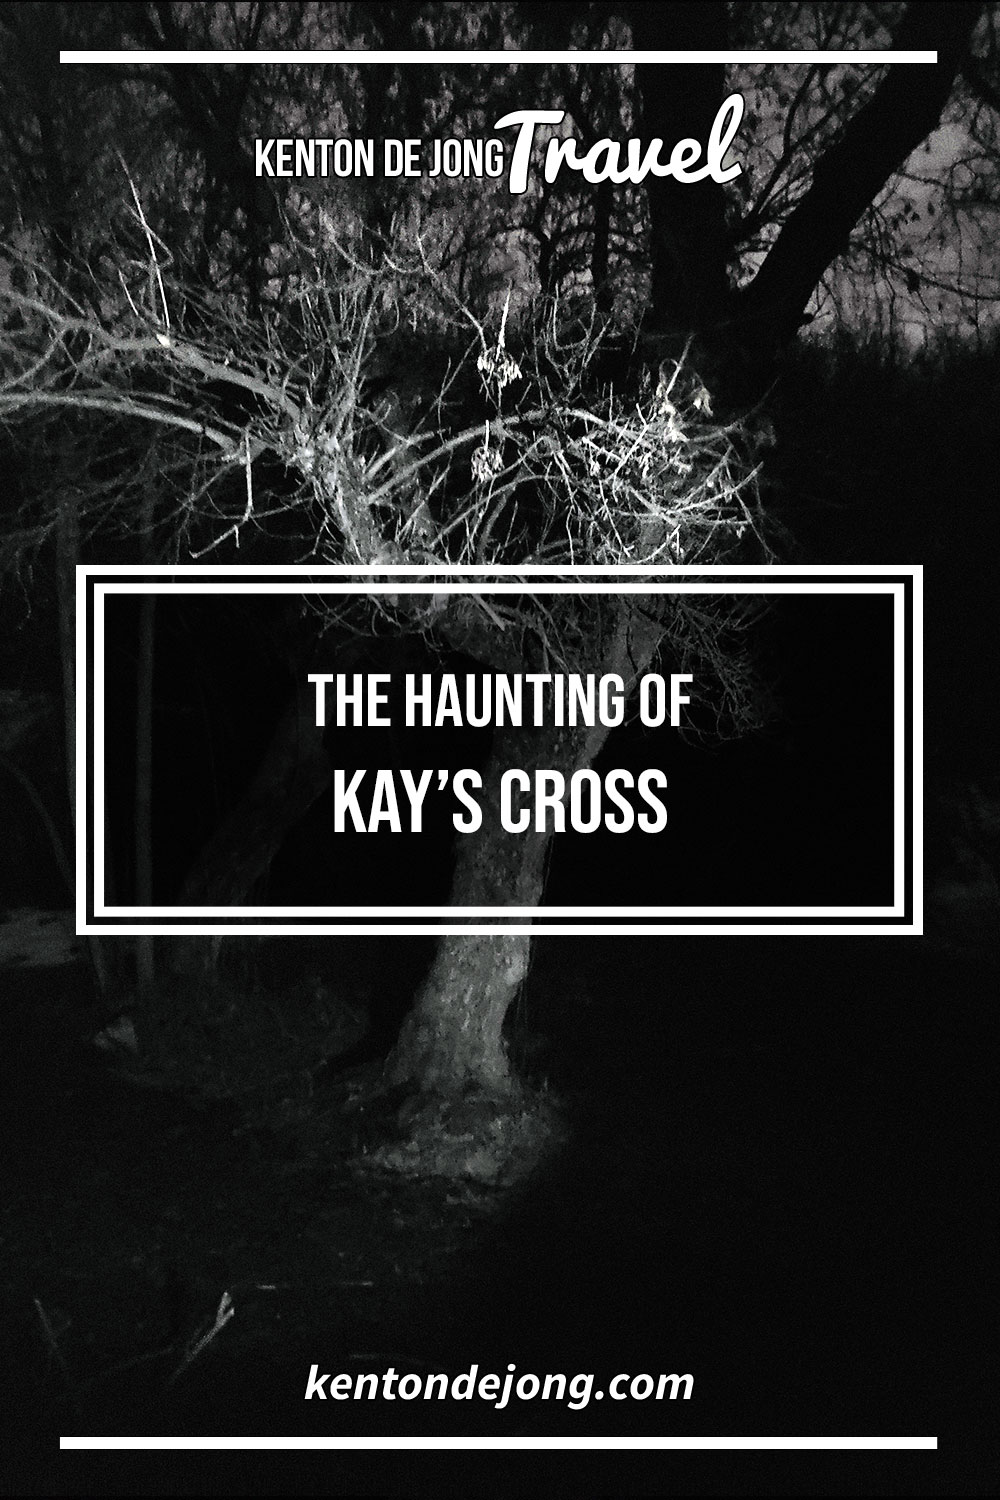 The Haunting of Kay's Cross